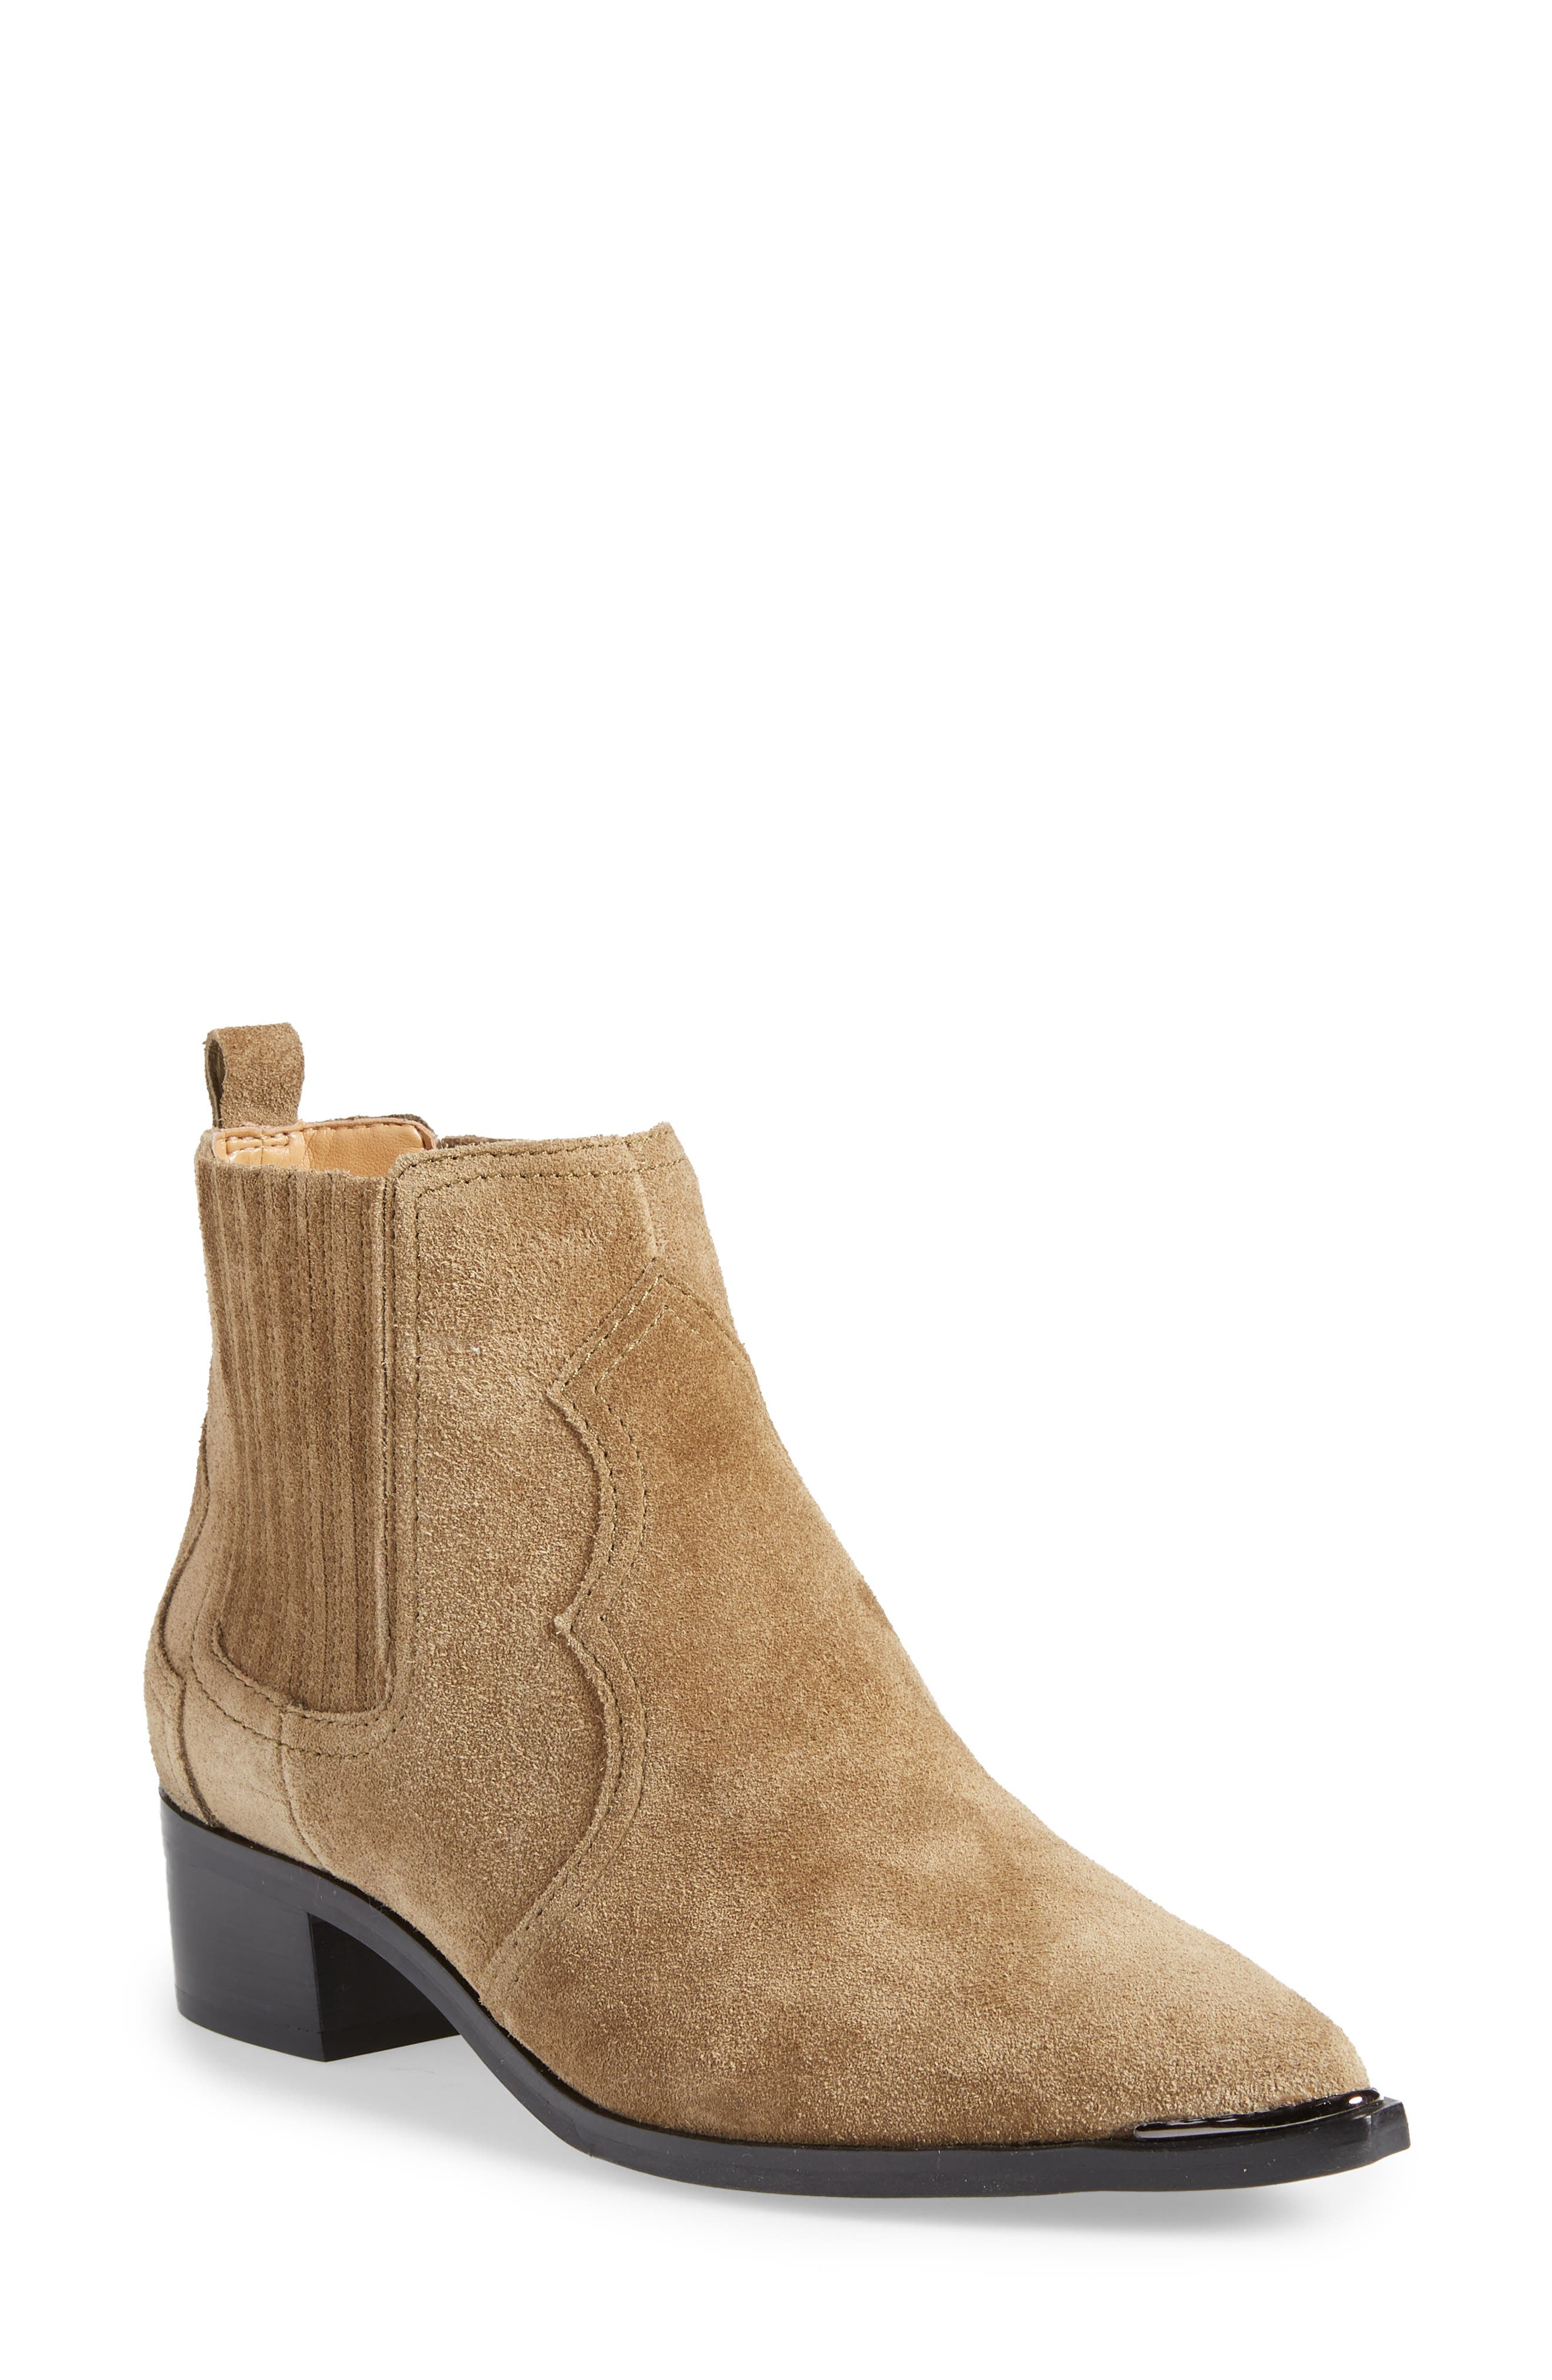 Yohani Bootie,                             Main thumbnail 1, color,                             TAUPE SUEDE